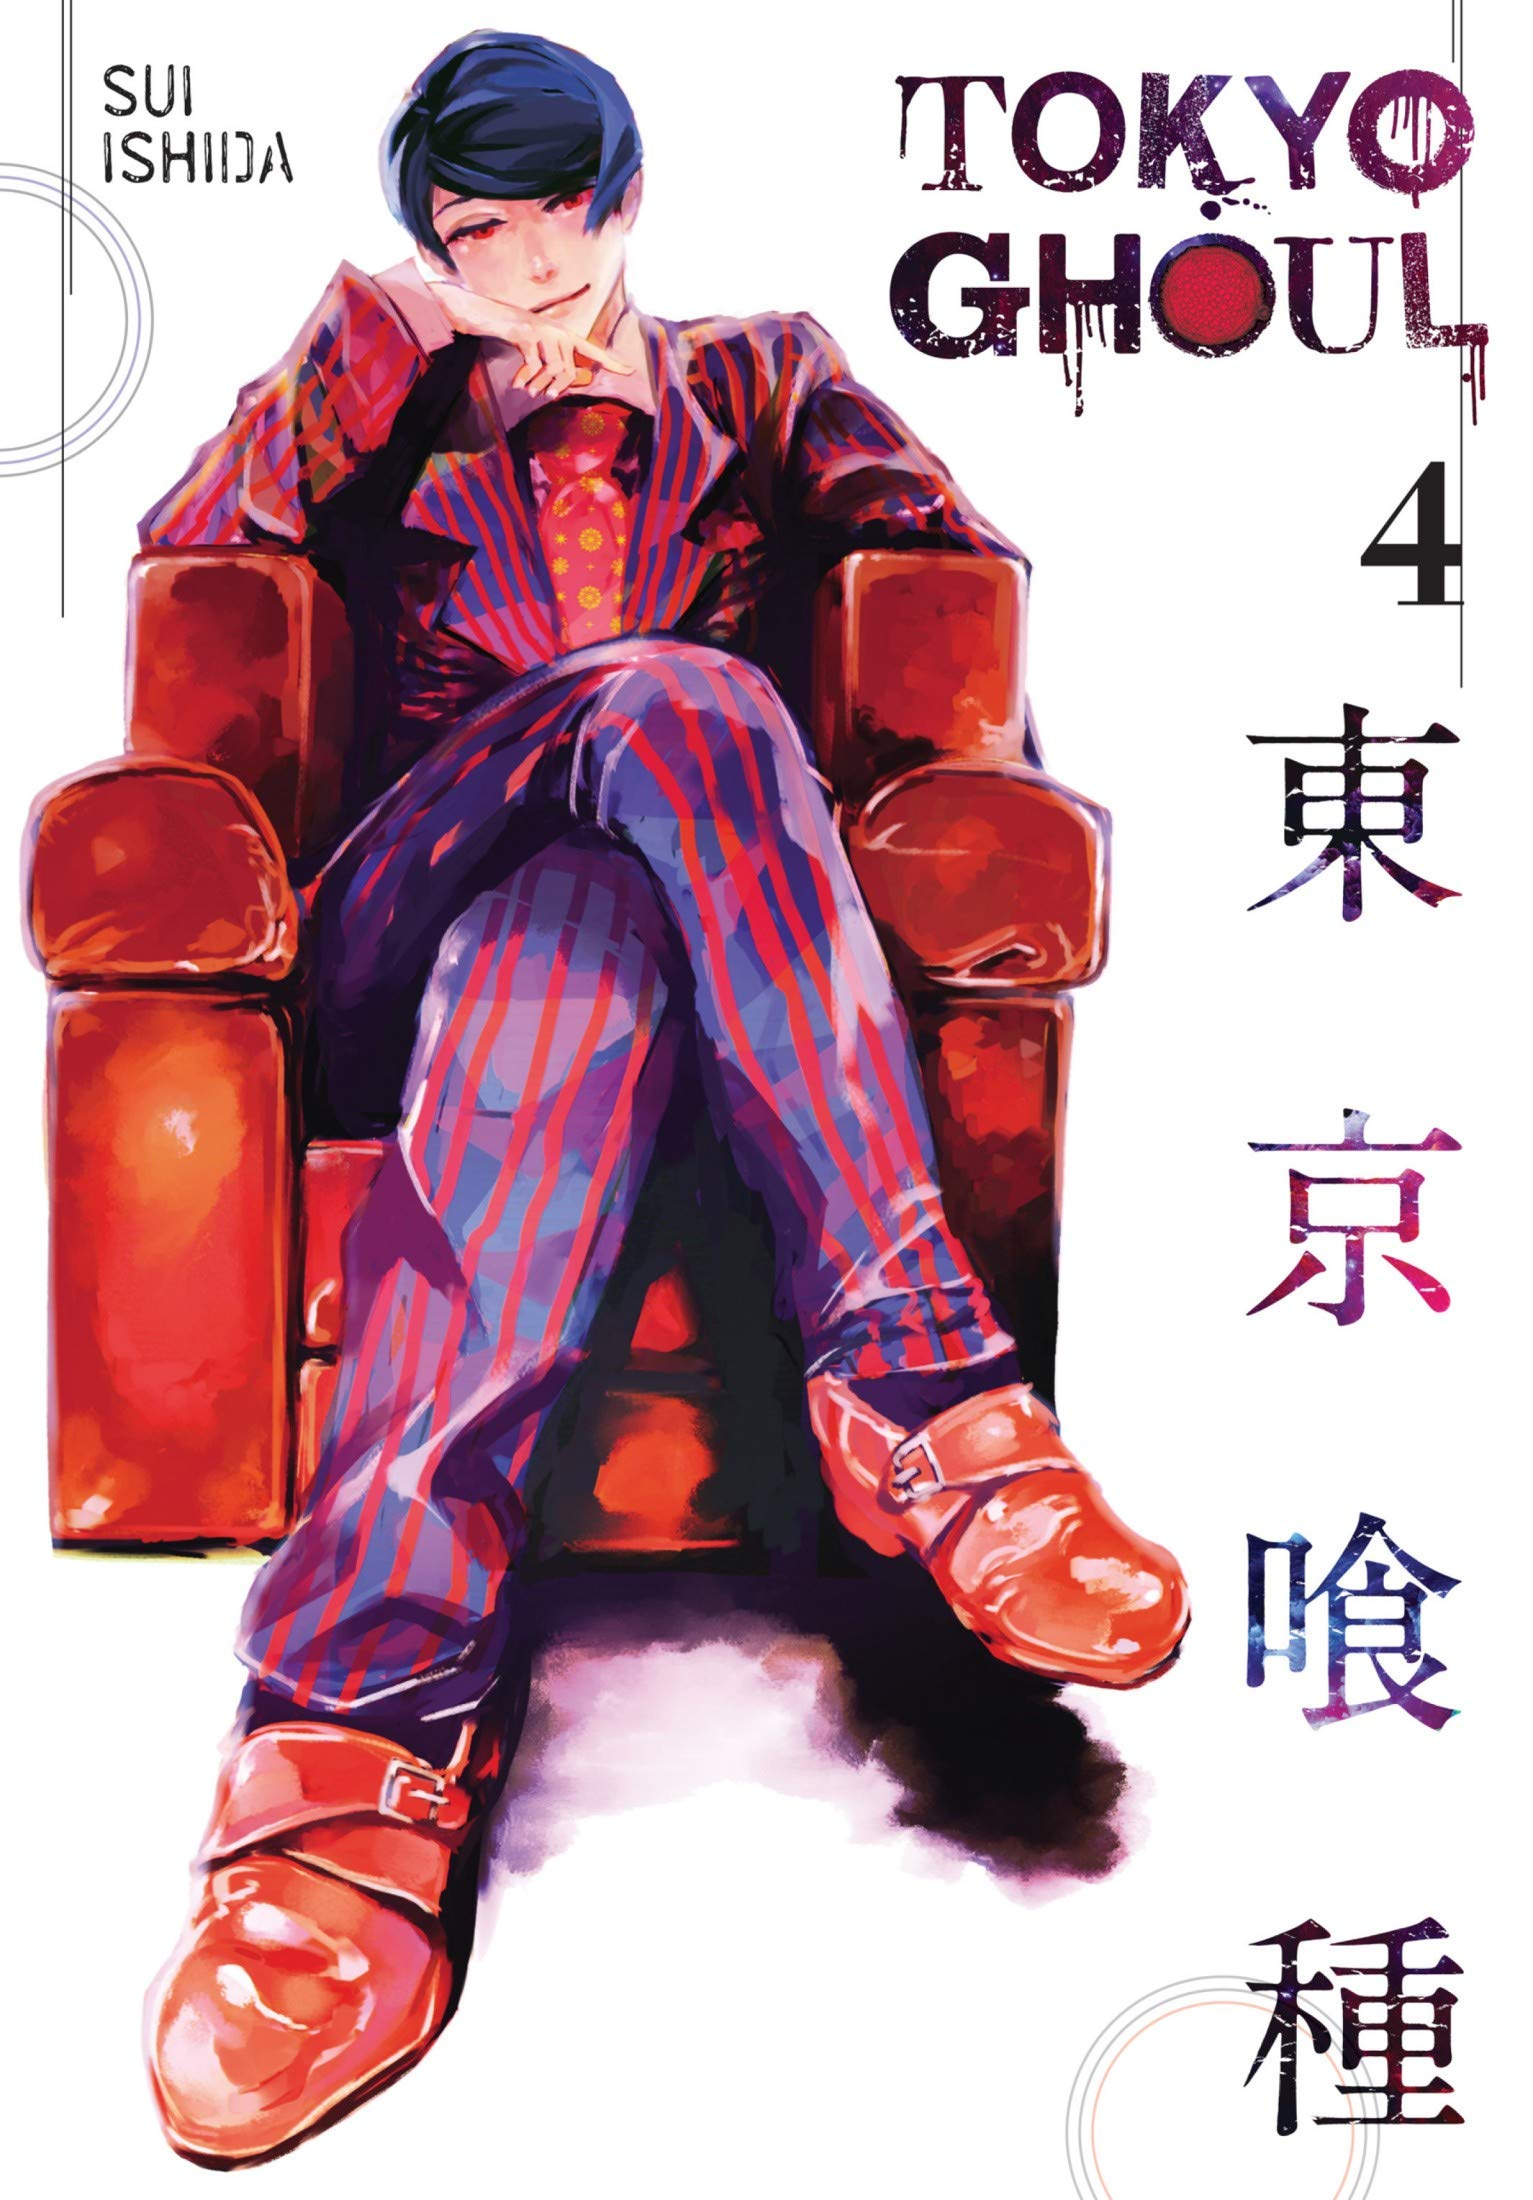 Ghoul: Tokyo Ghoul - Vol 4 - Great Graphic Novel Manga For Teens , Adults, Fan